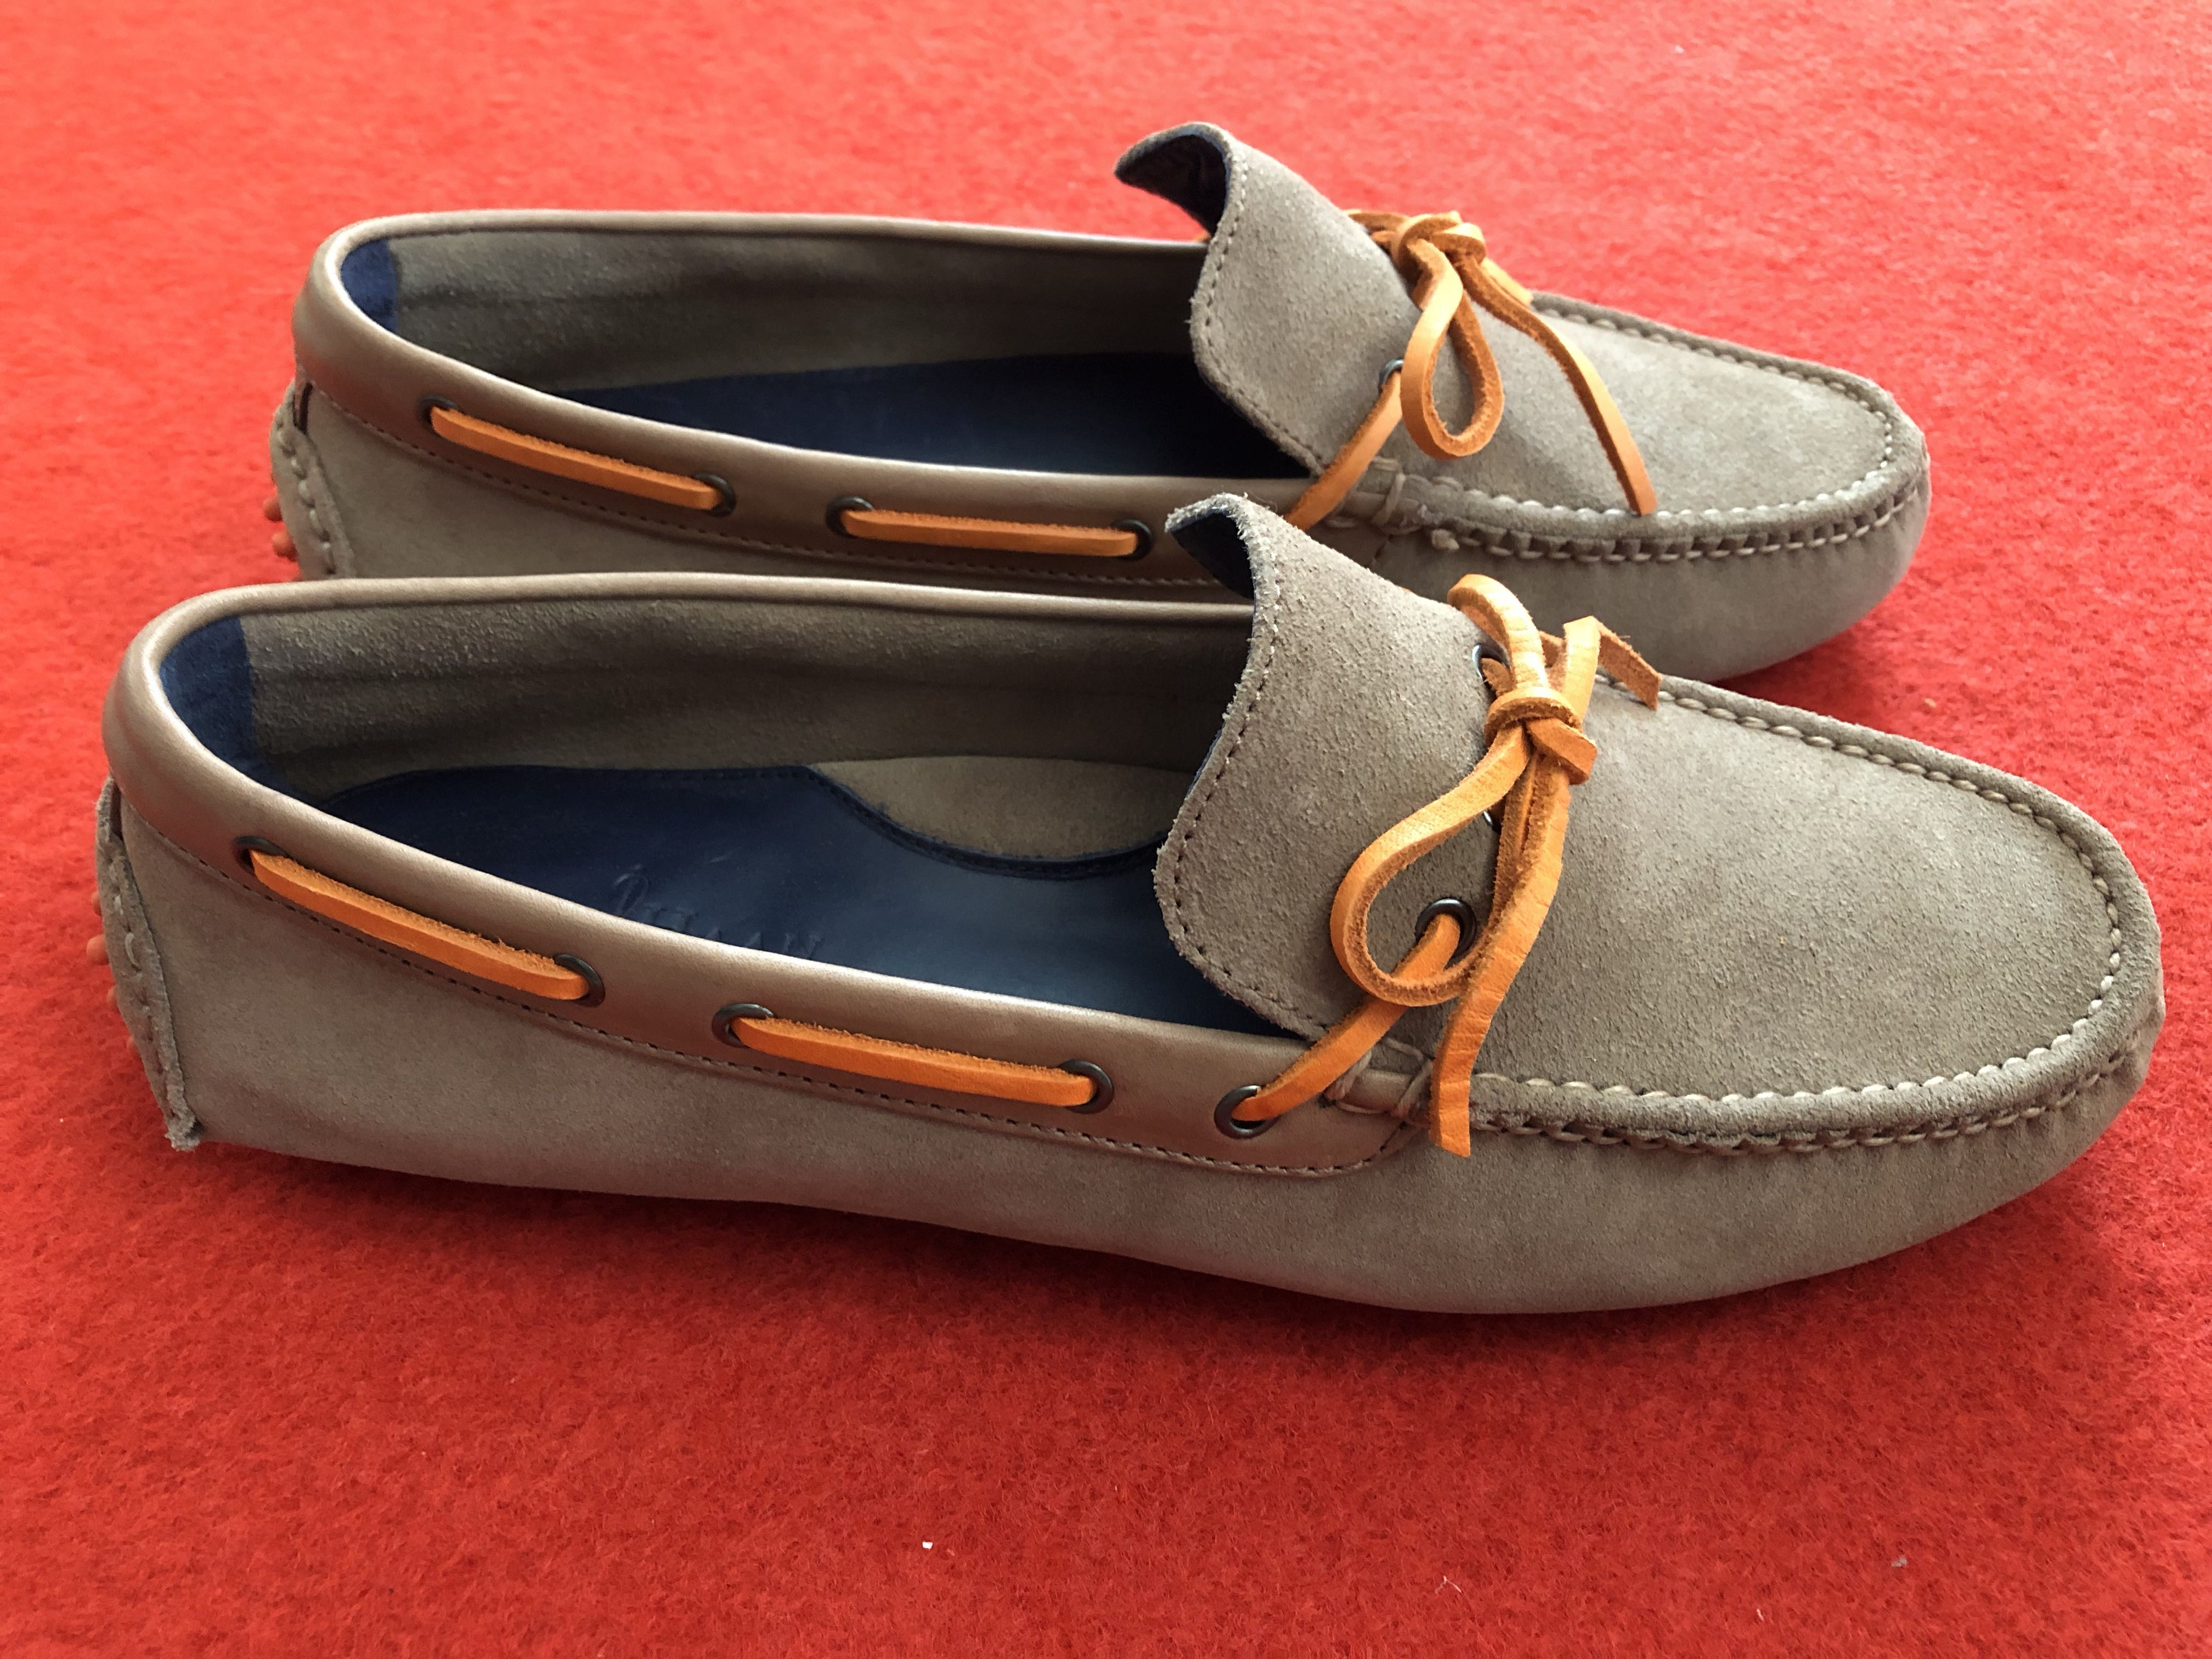 cd9d8bbf32 Cole Haan Men's Shoes - Brand New Air Grant Moccasin Size US9.5 ...